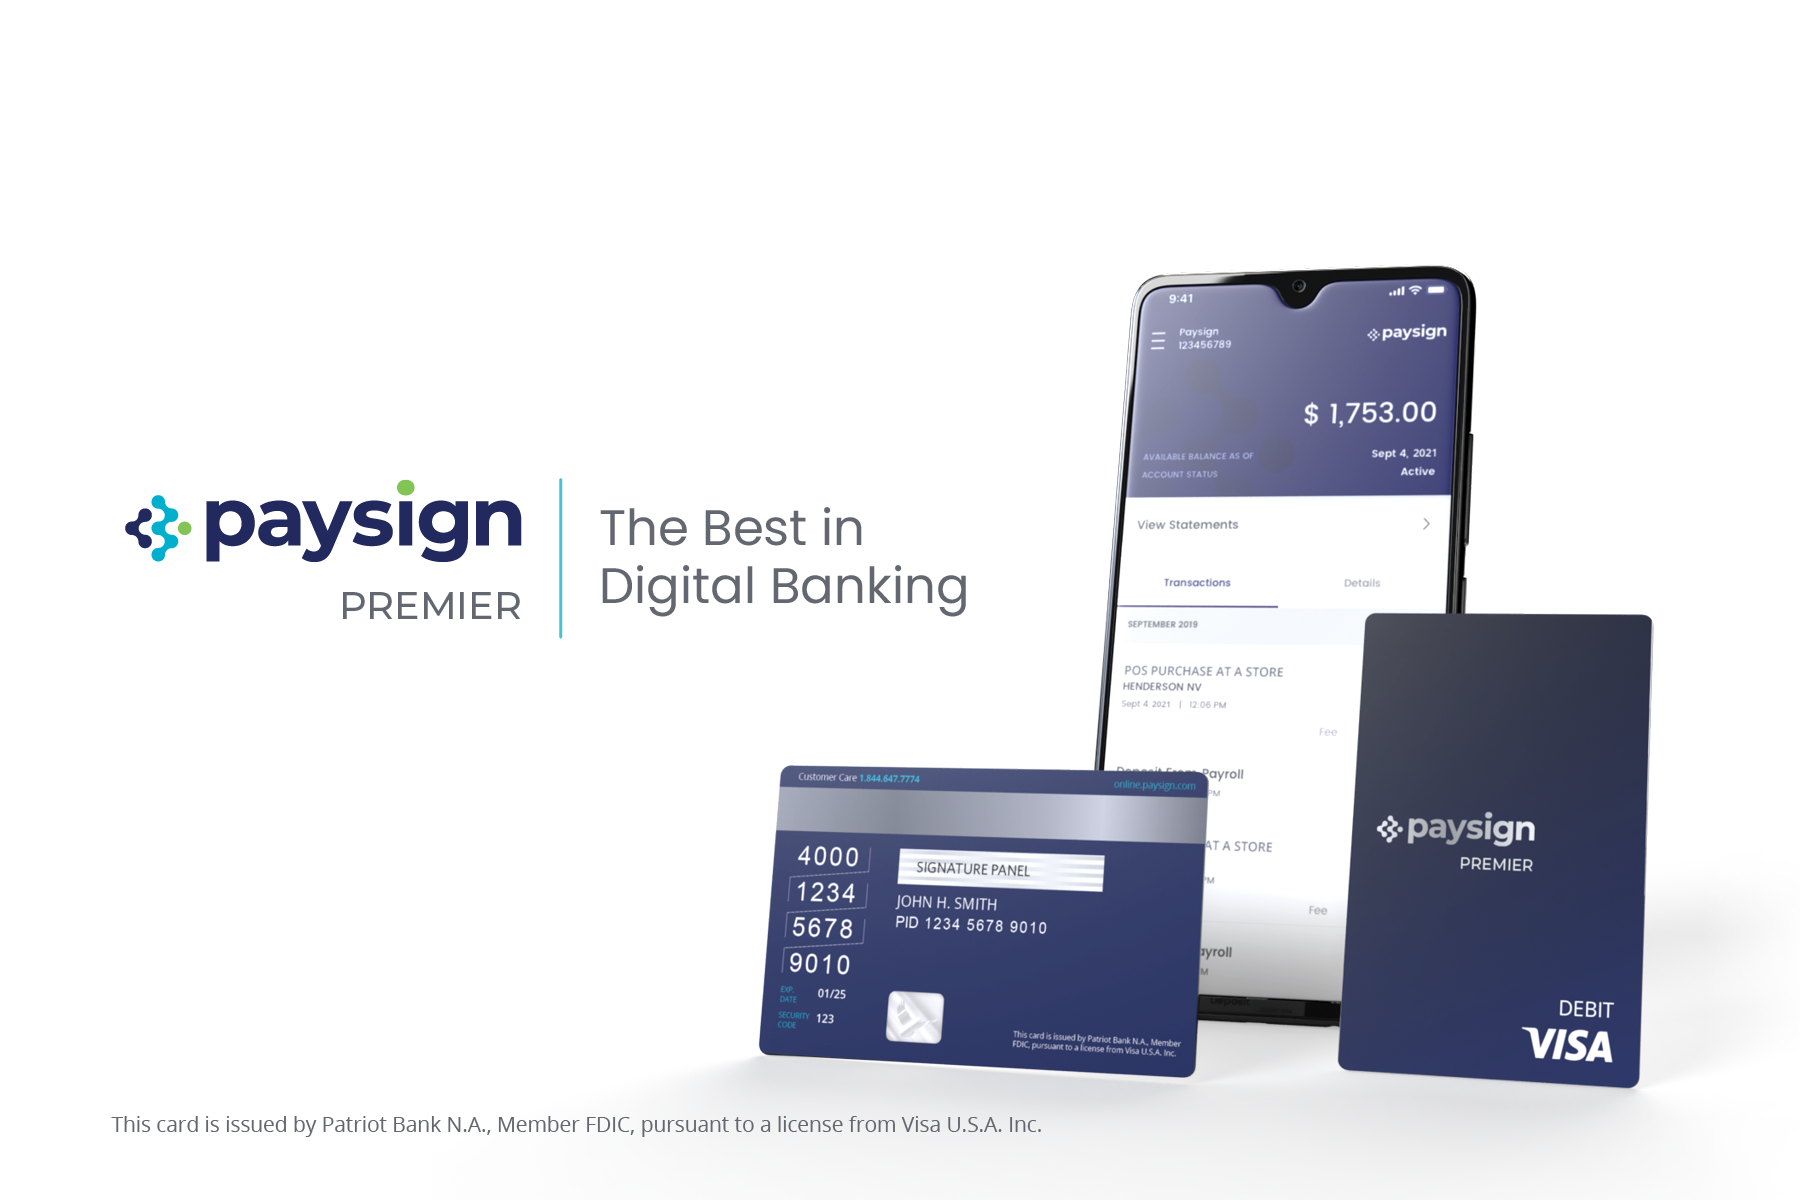 Paysign Premier – The Best in Digital Banking